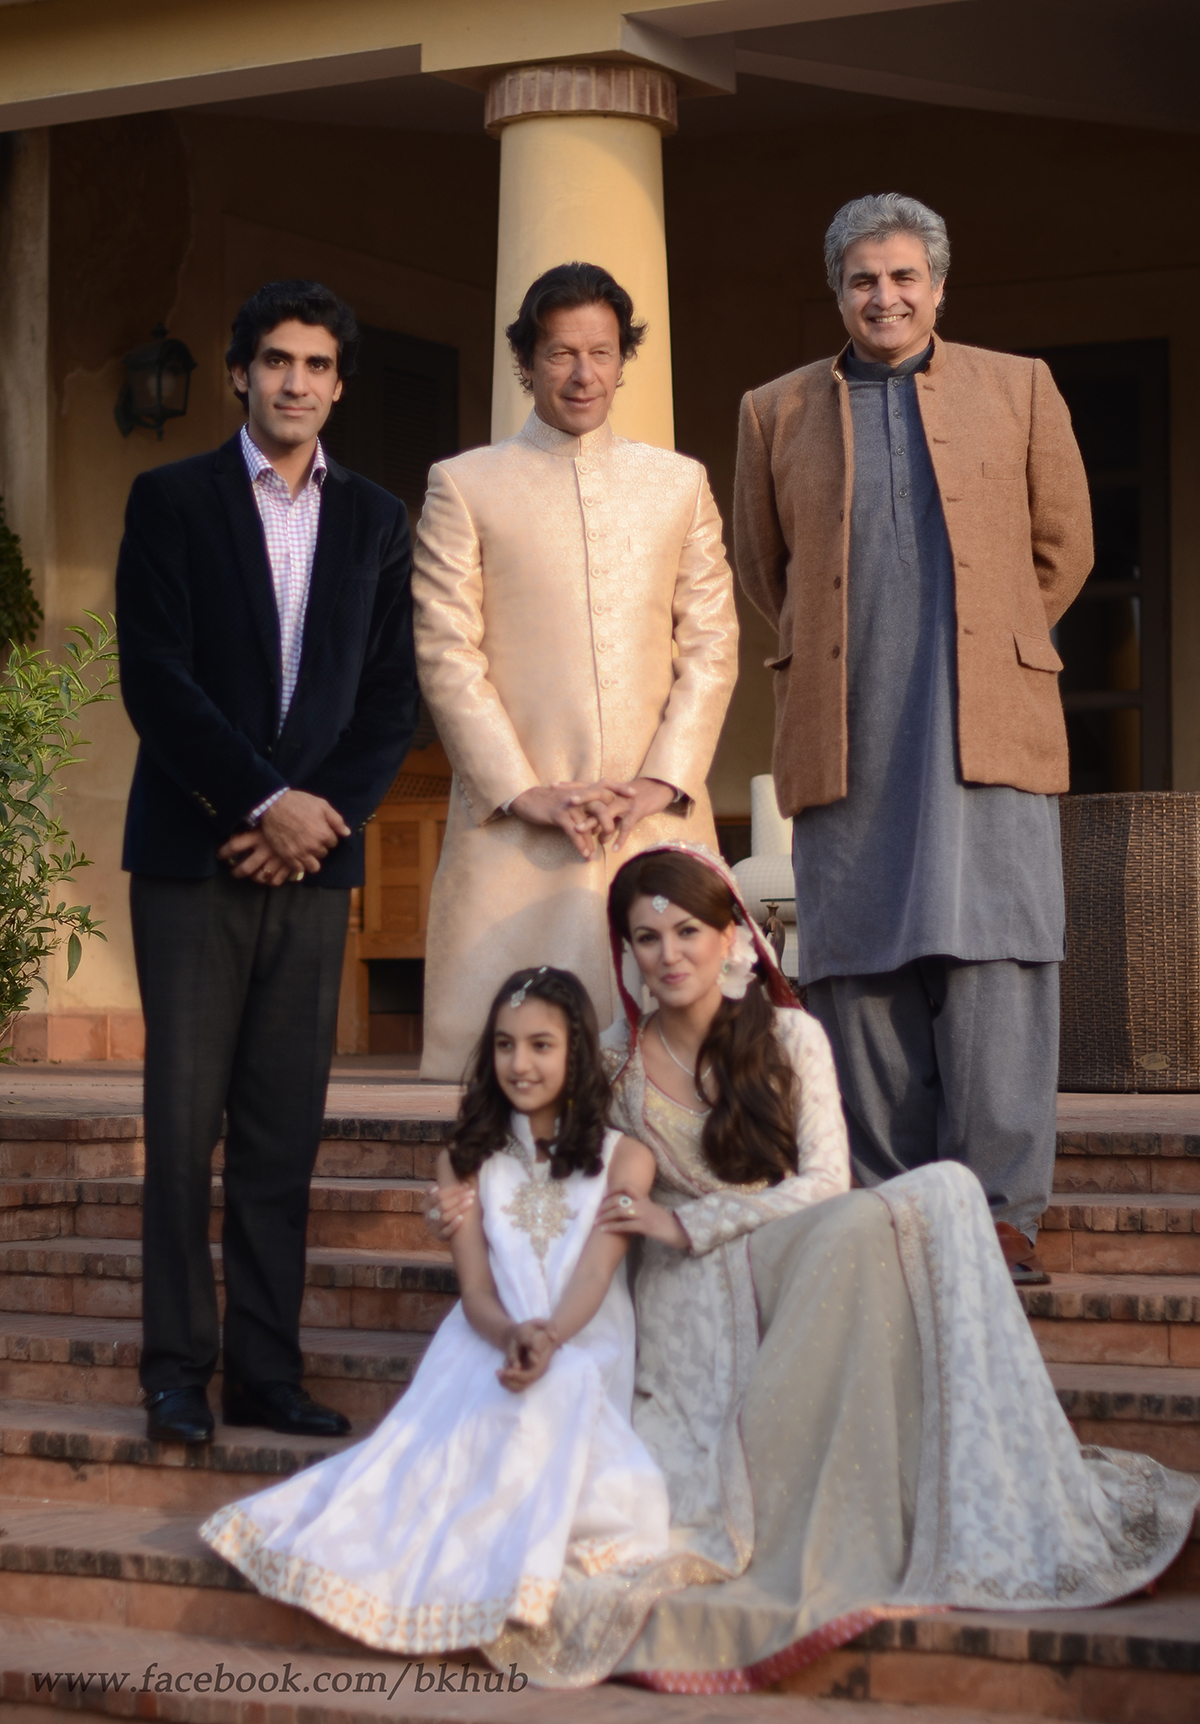 The couple pose with guests at the wedding.— Photo by Belal Khan